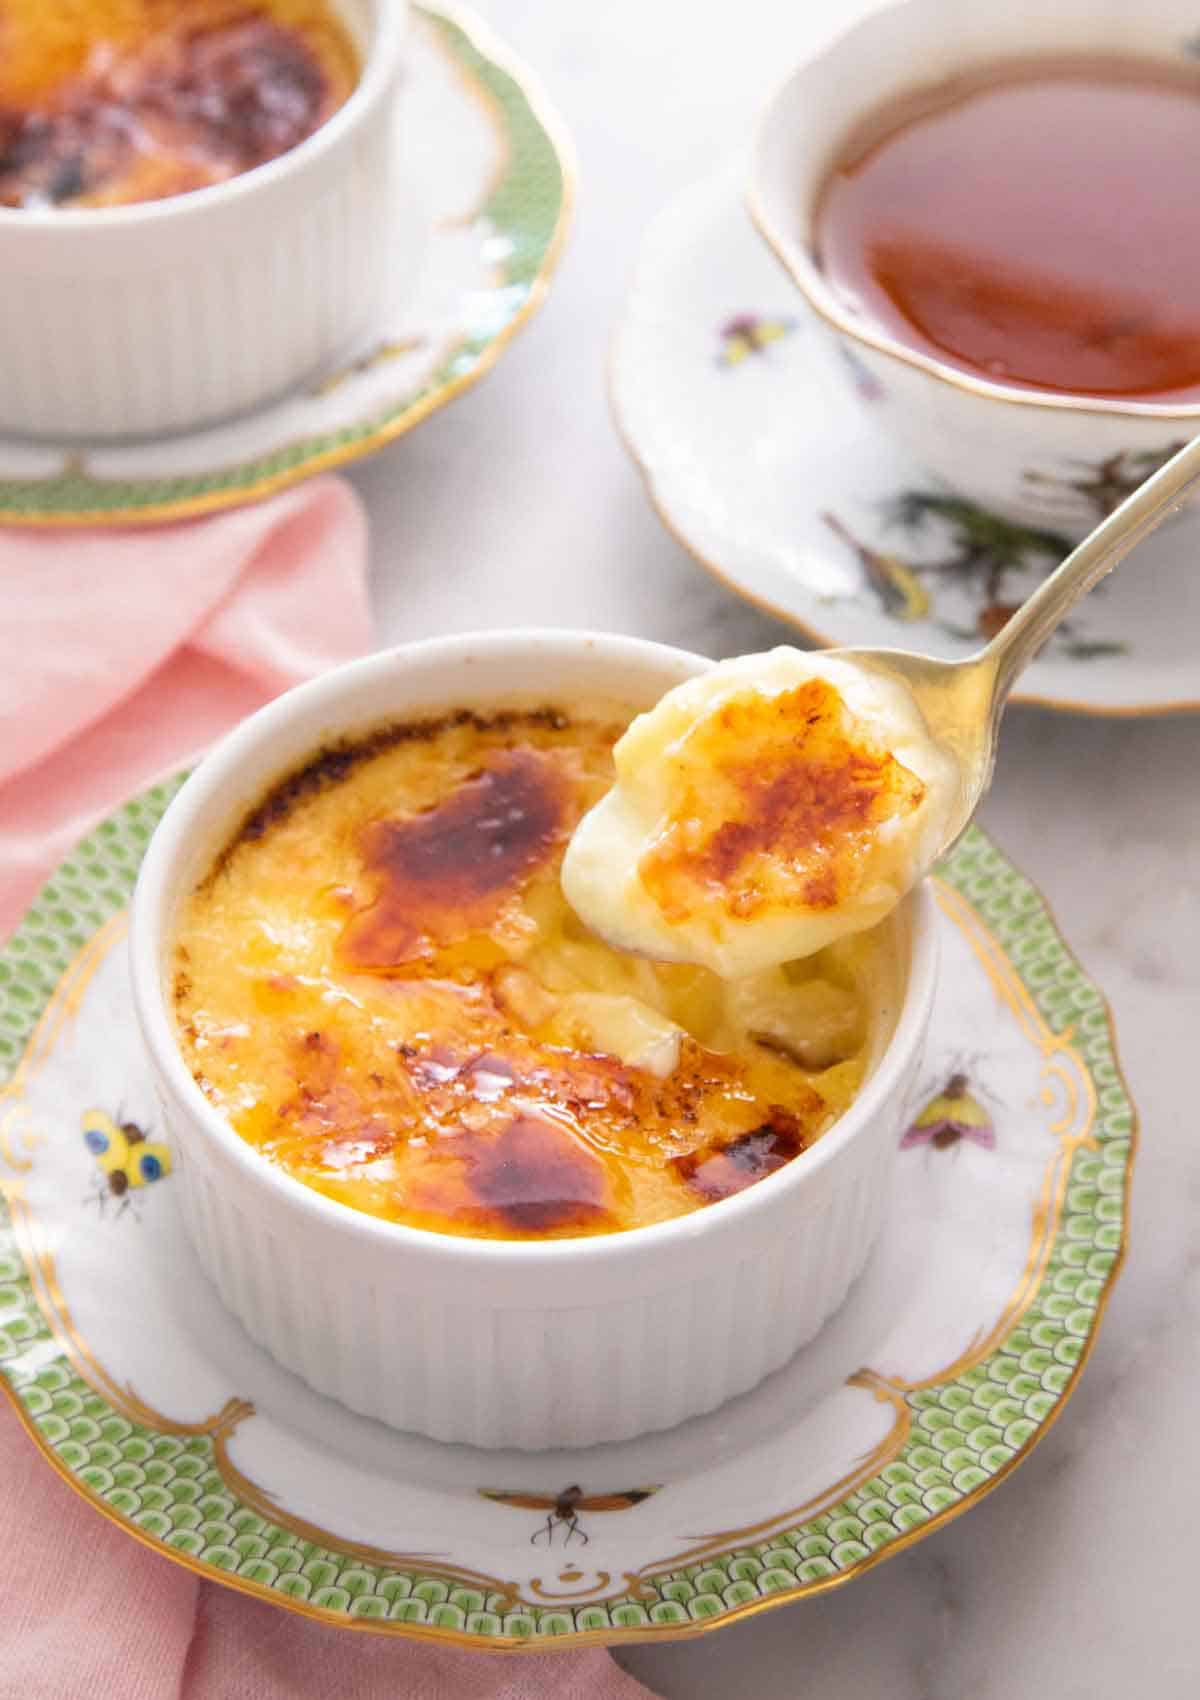 A spoonful of crème brûlée lifted from the ramekin with a cup of tea in the background.